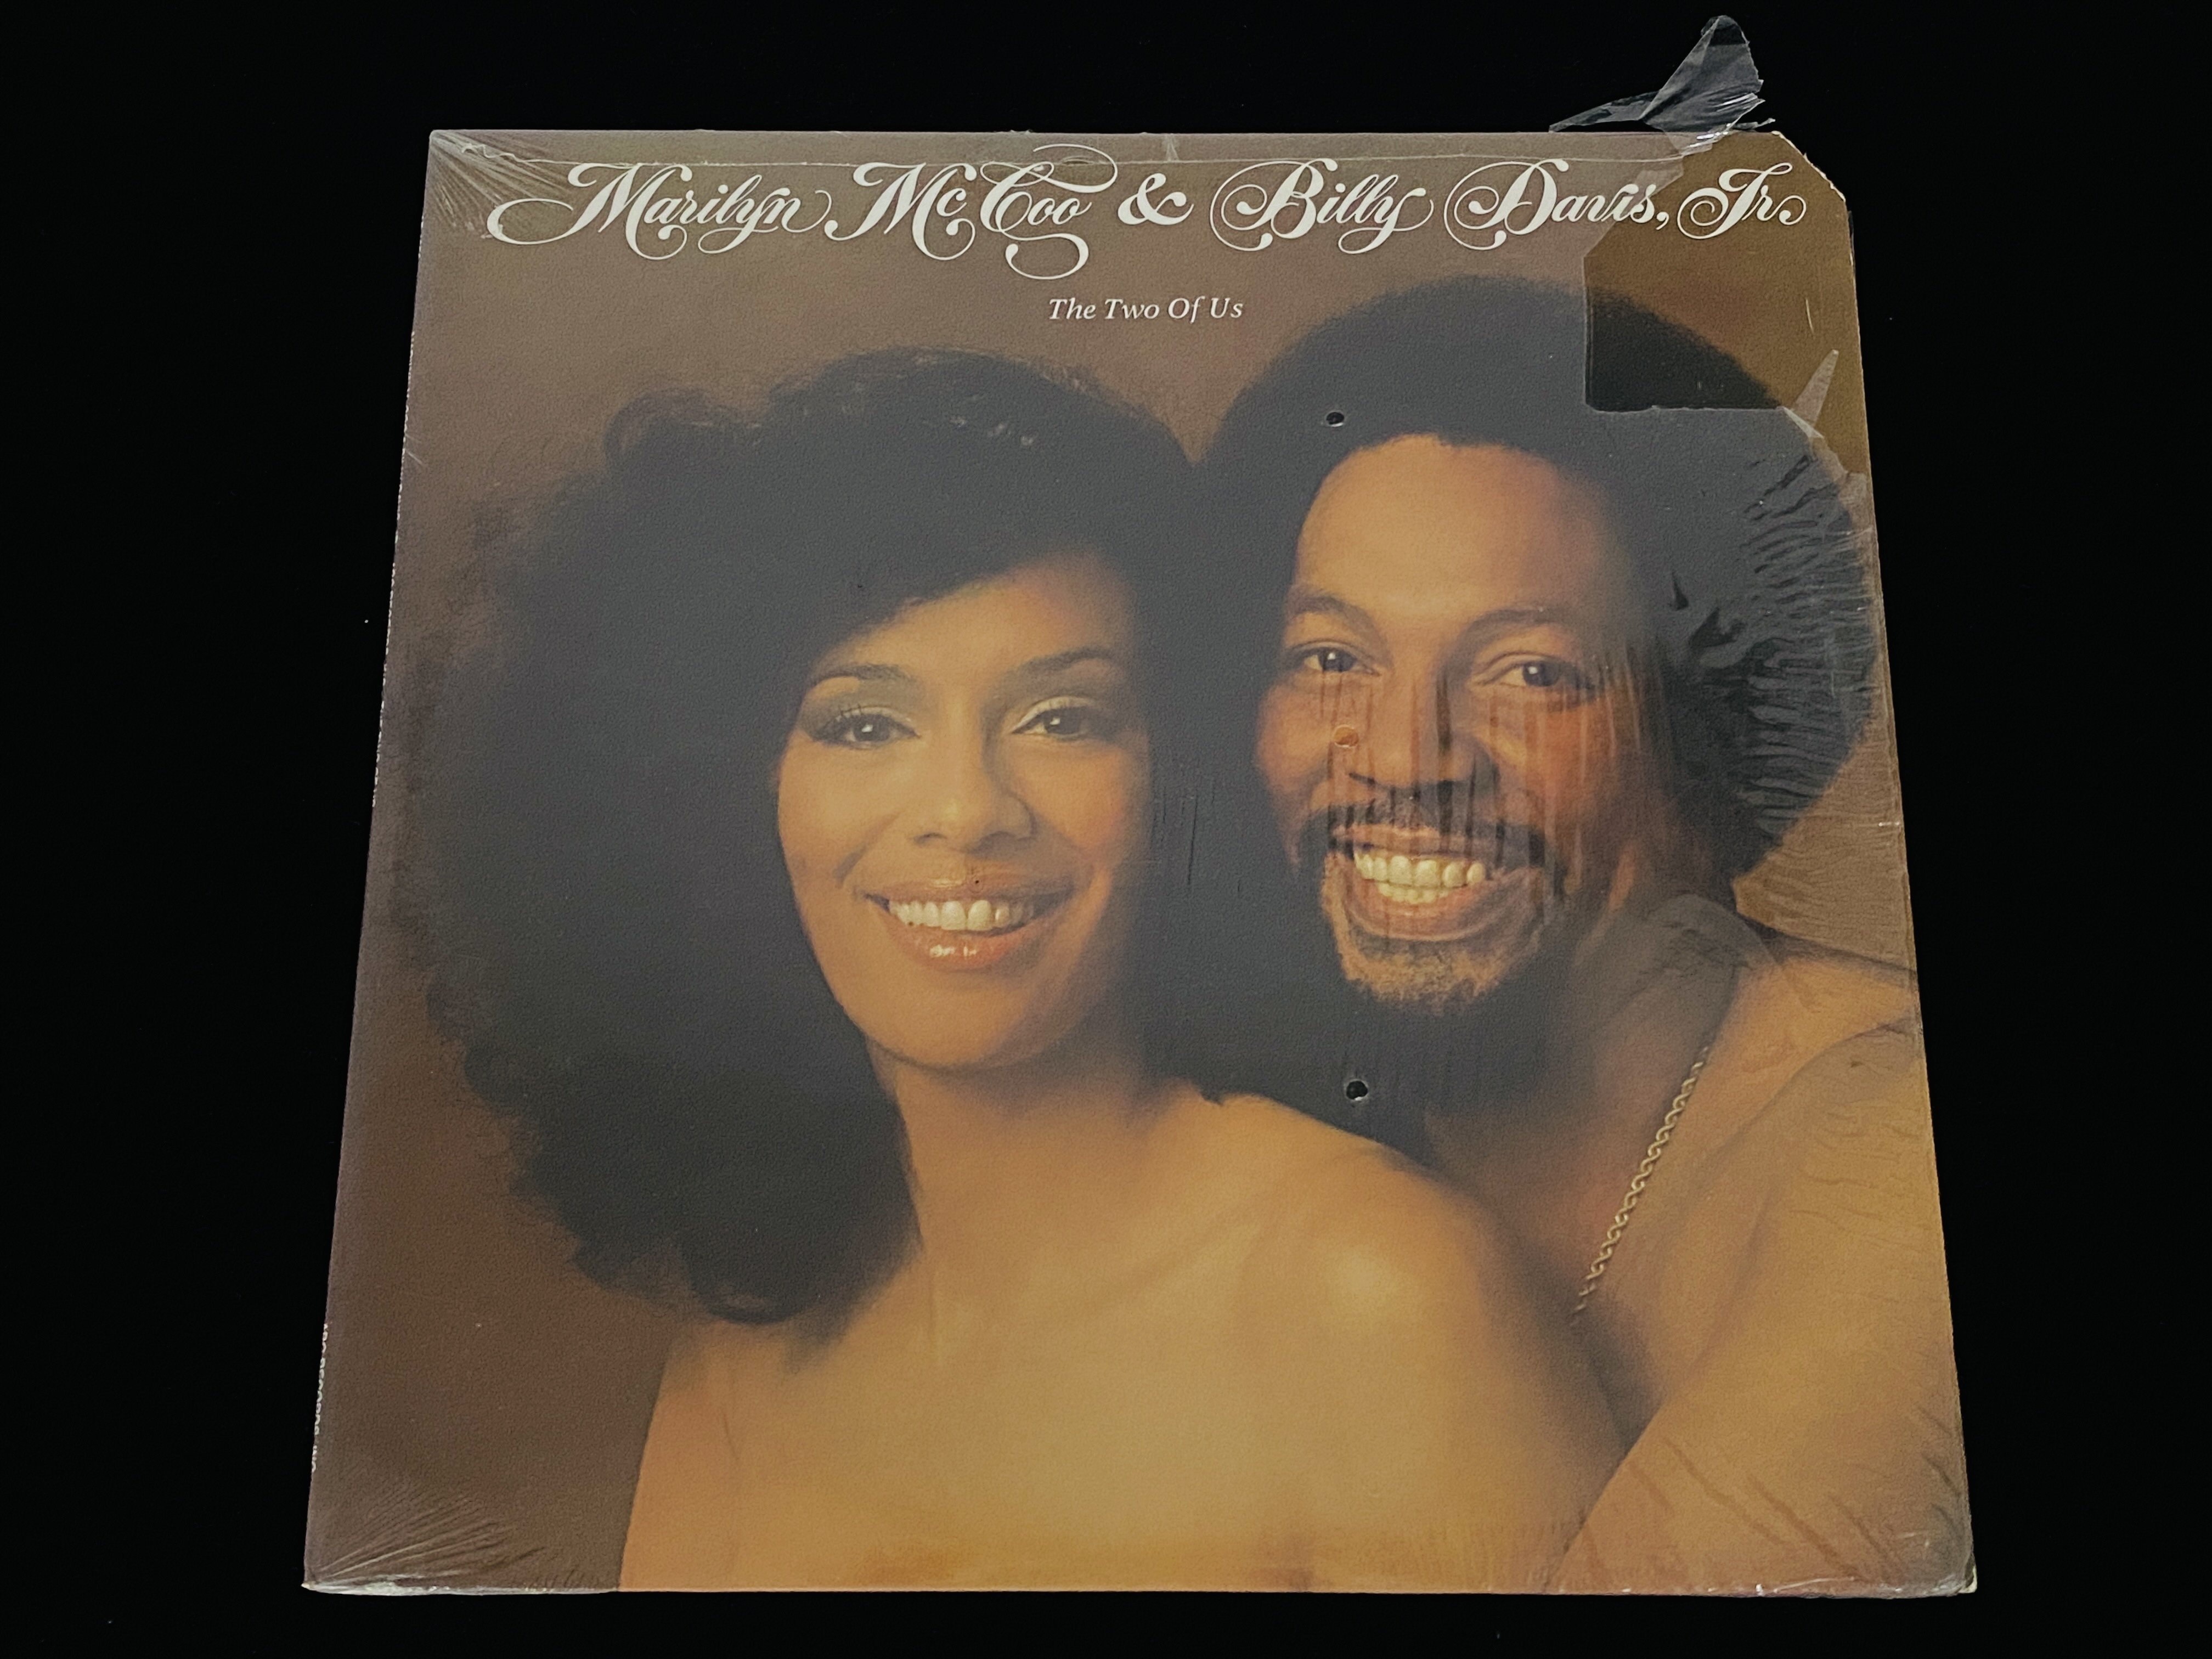 Marilyn McCoo & Billy Davis Jr. - The Two Of Us (US, 1977)